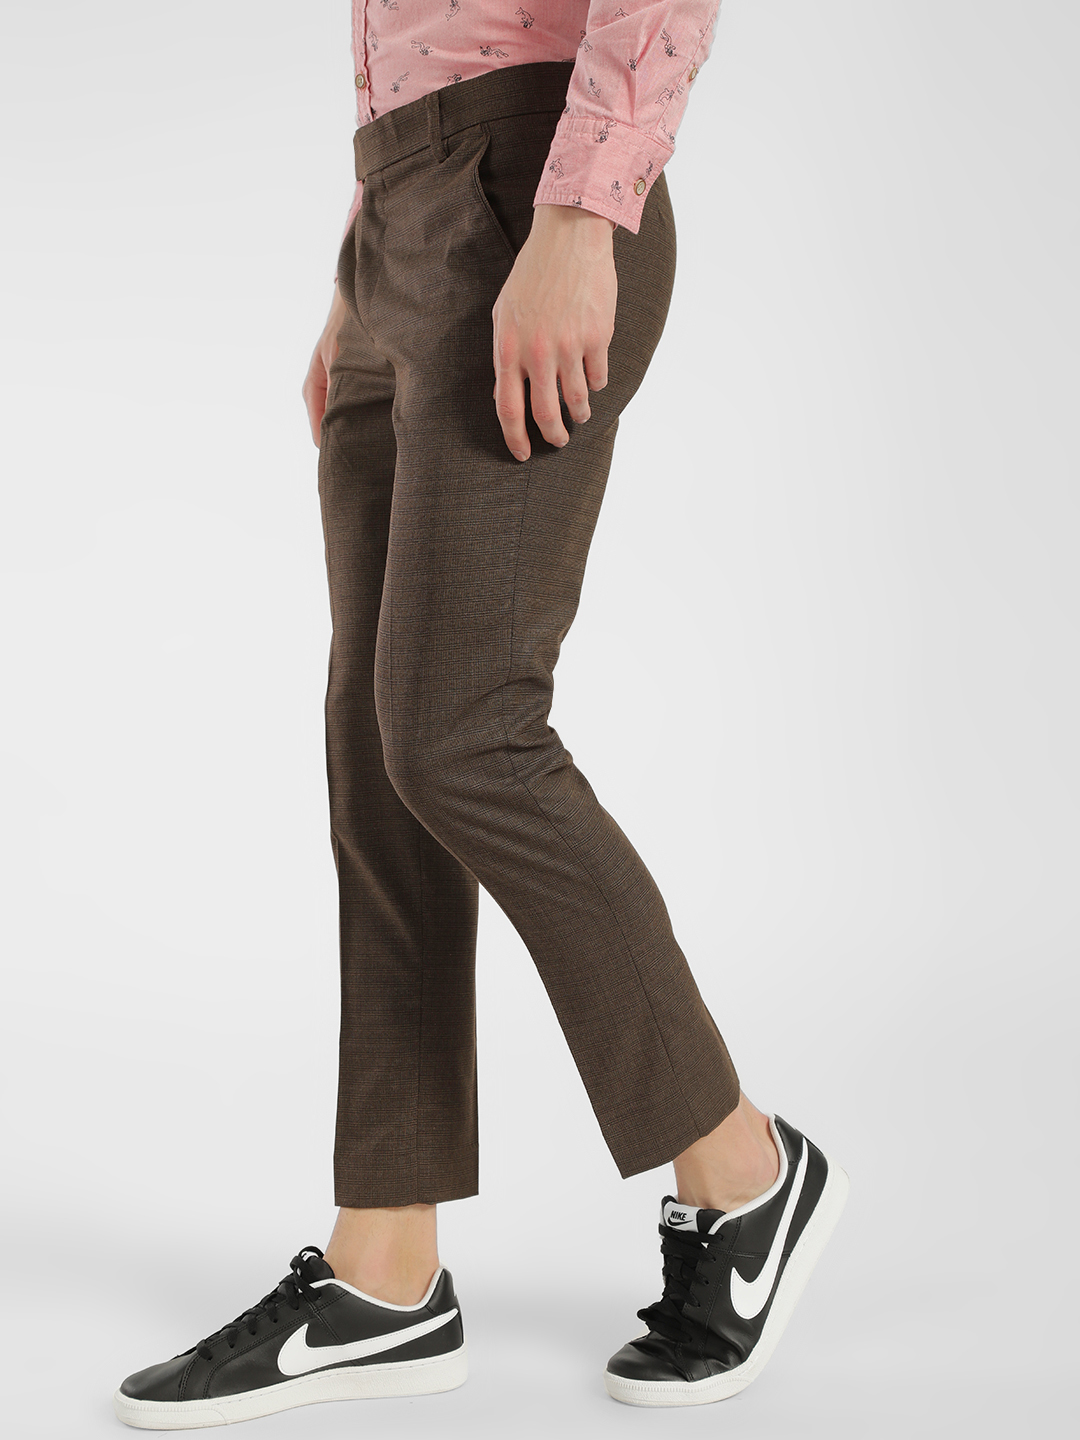 Mr Button Brown Micro Check Slim Trousers 1